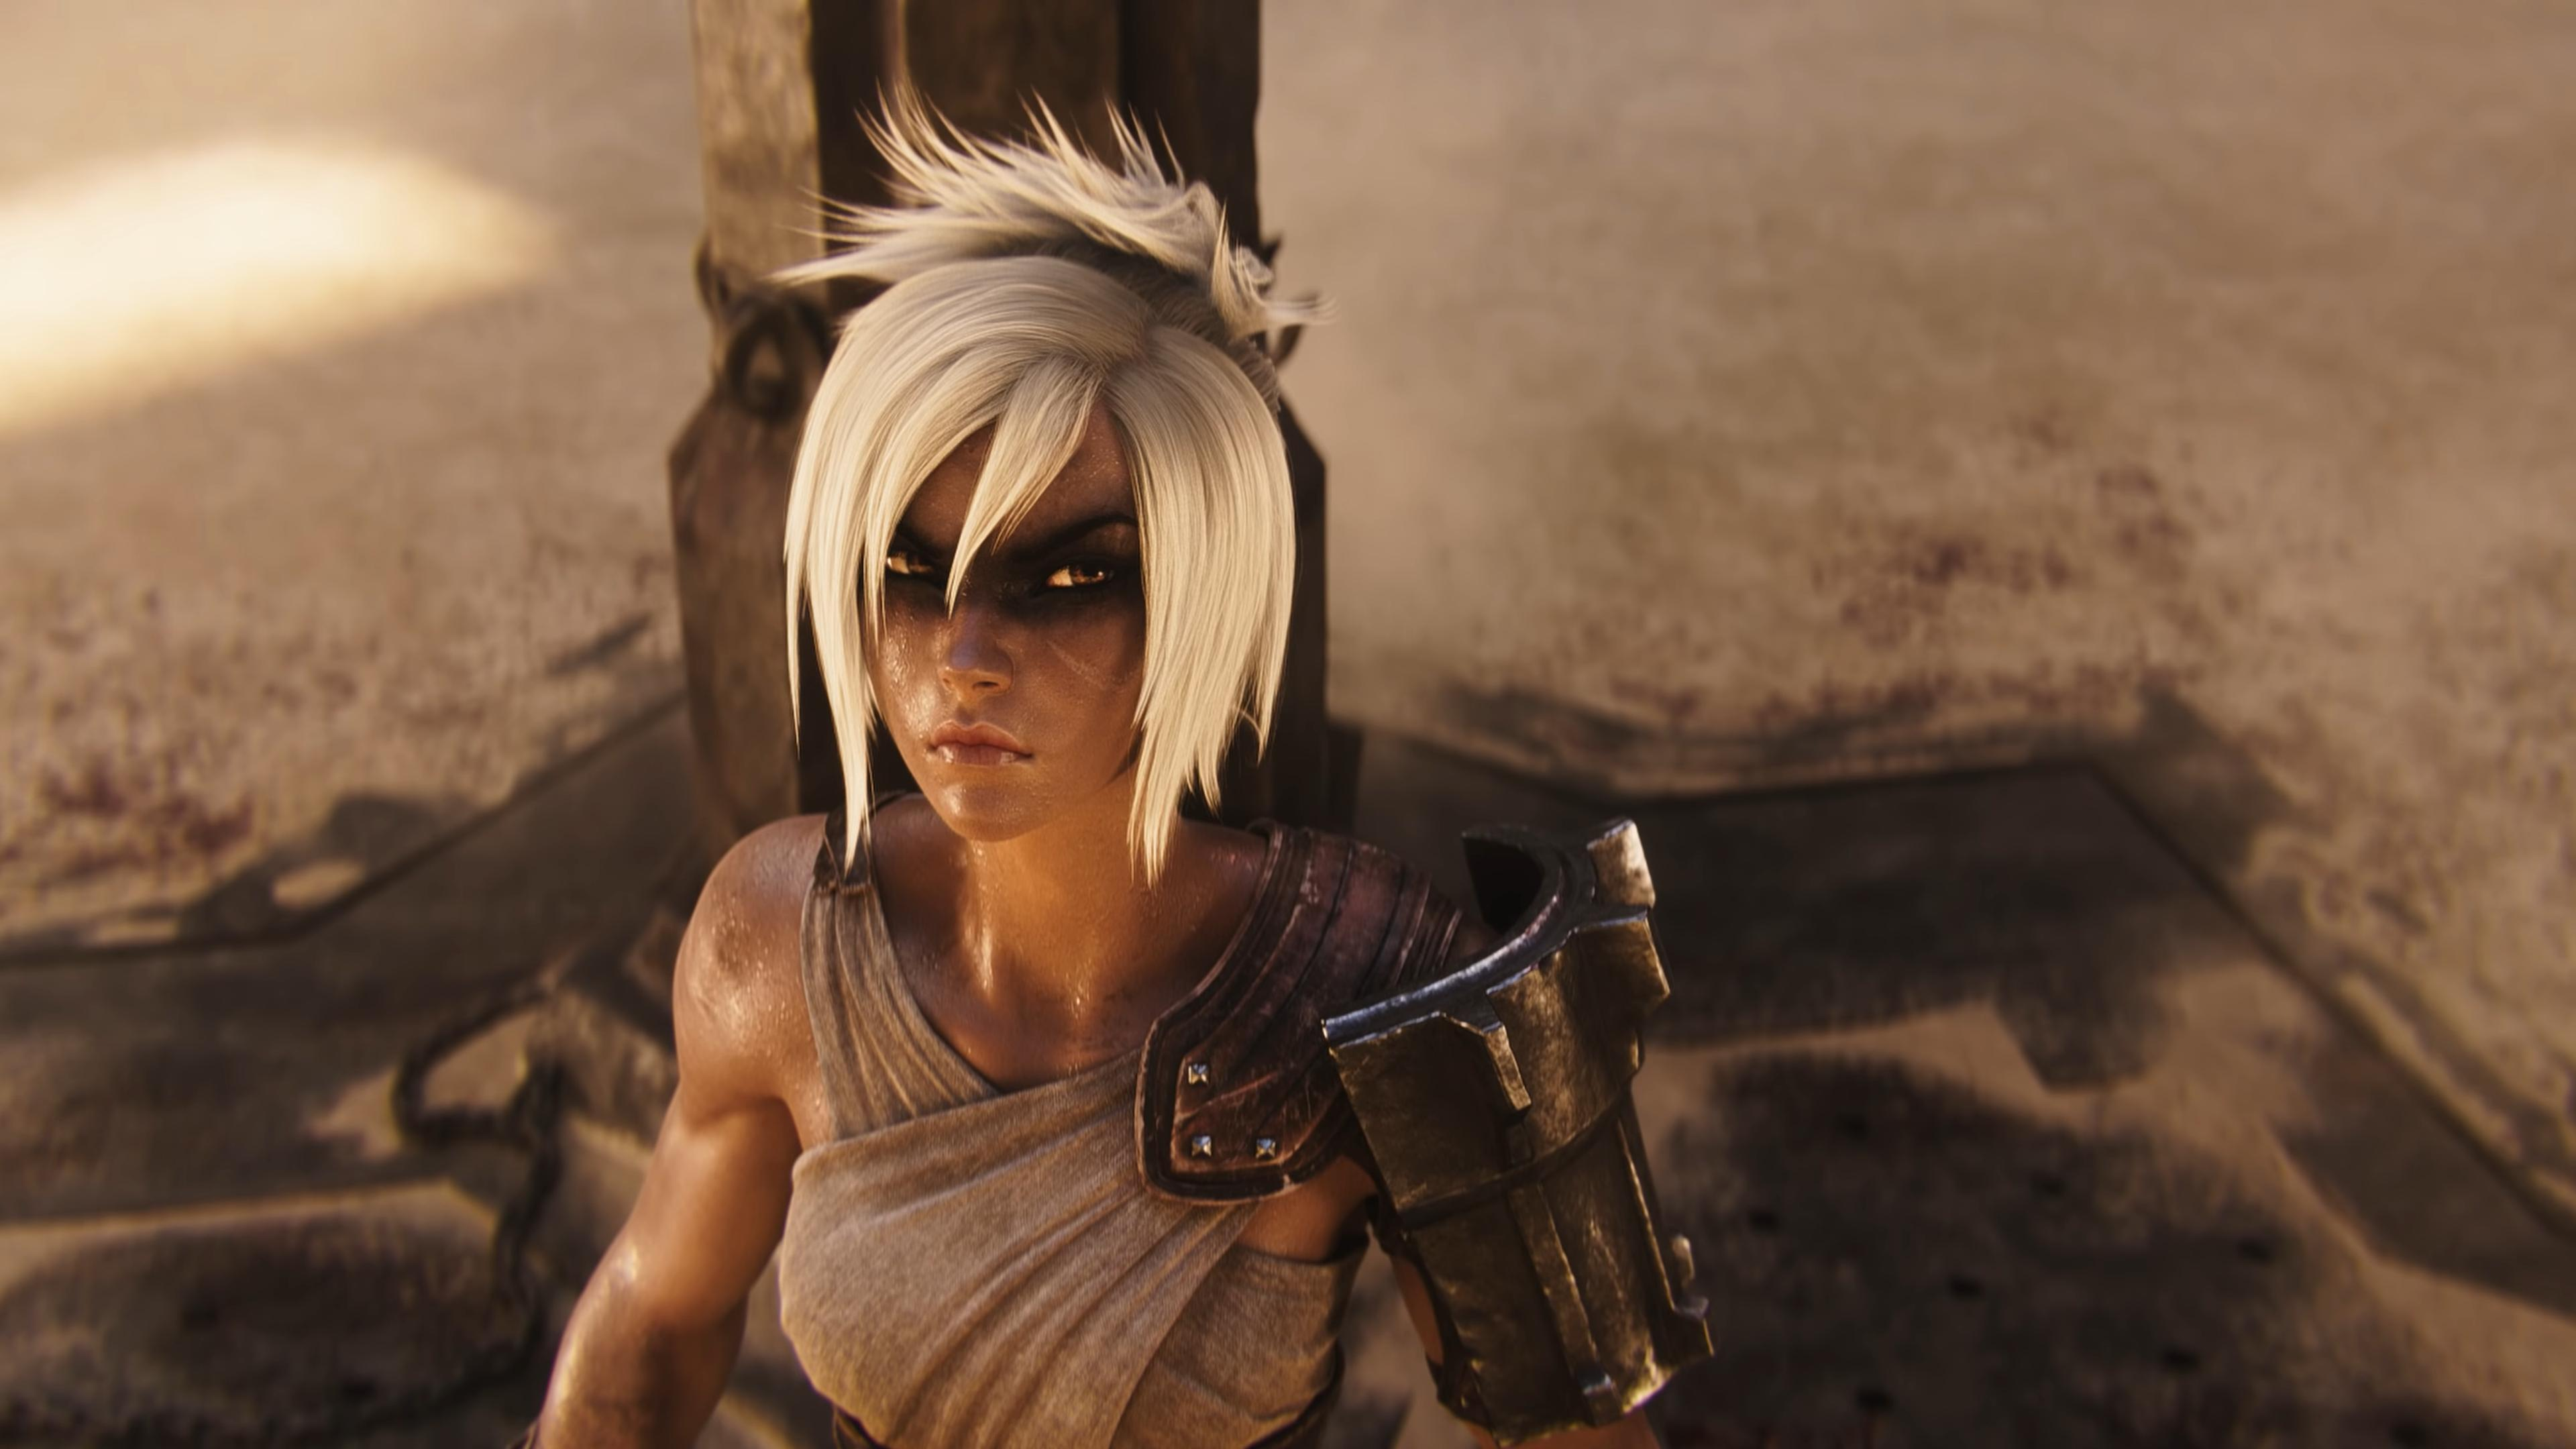 General 3840x2160 League of Legends Riven PC gaming blonde video game girls